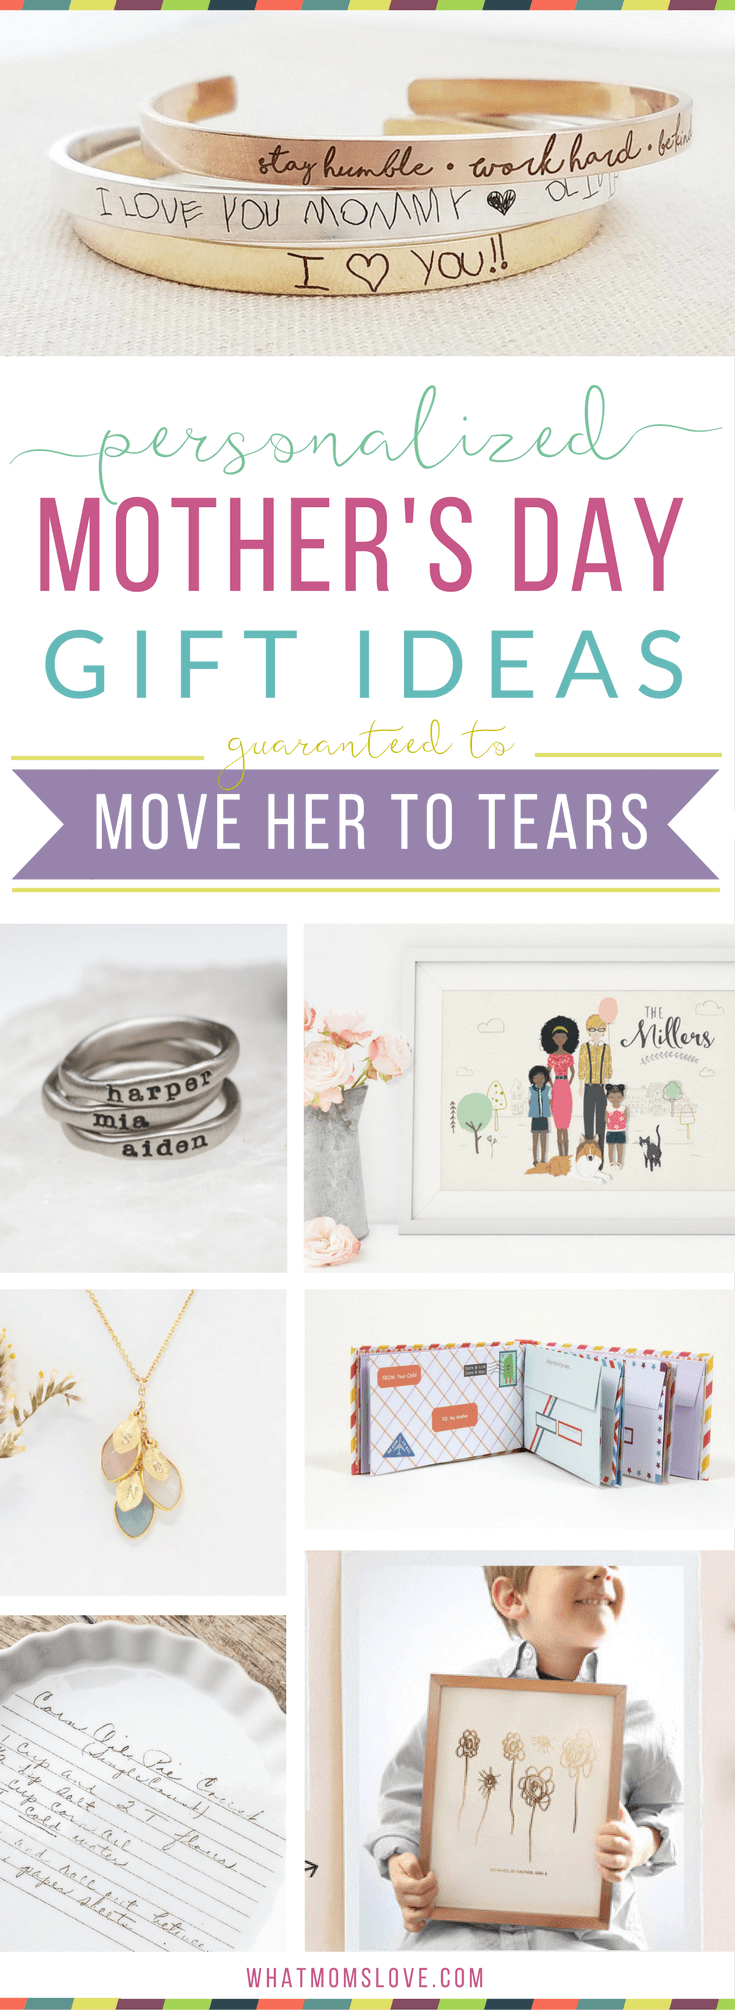 Unique personalized gift ideas for Mother's Day | Meaningful custom gifts for mom, nana or grandma from you, your kids (toddlers to teens) or grandkids. Buy her something she'll fall in love with this year - ideas for custom jewelry, portraits, kitchen, home and decor presents.